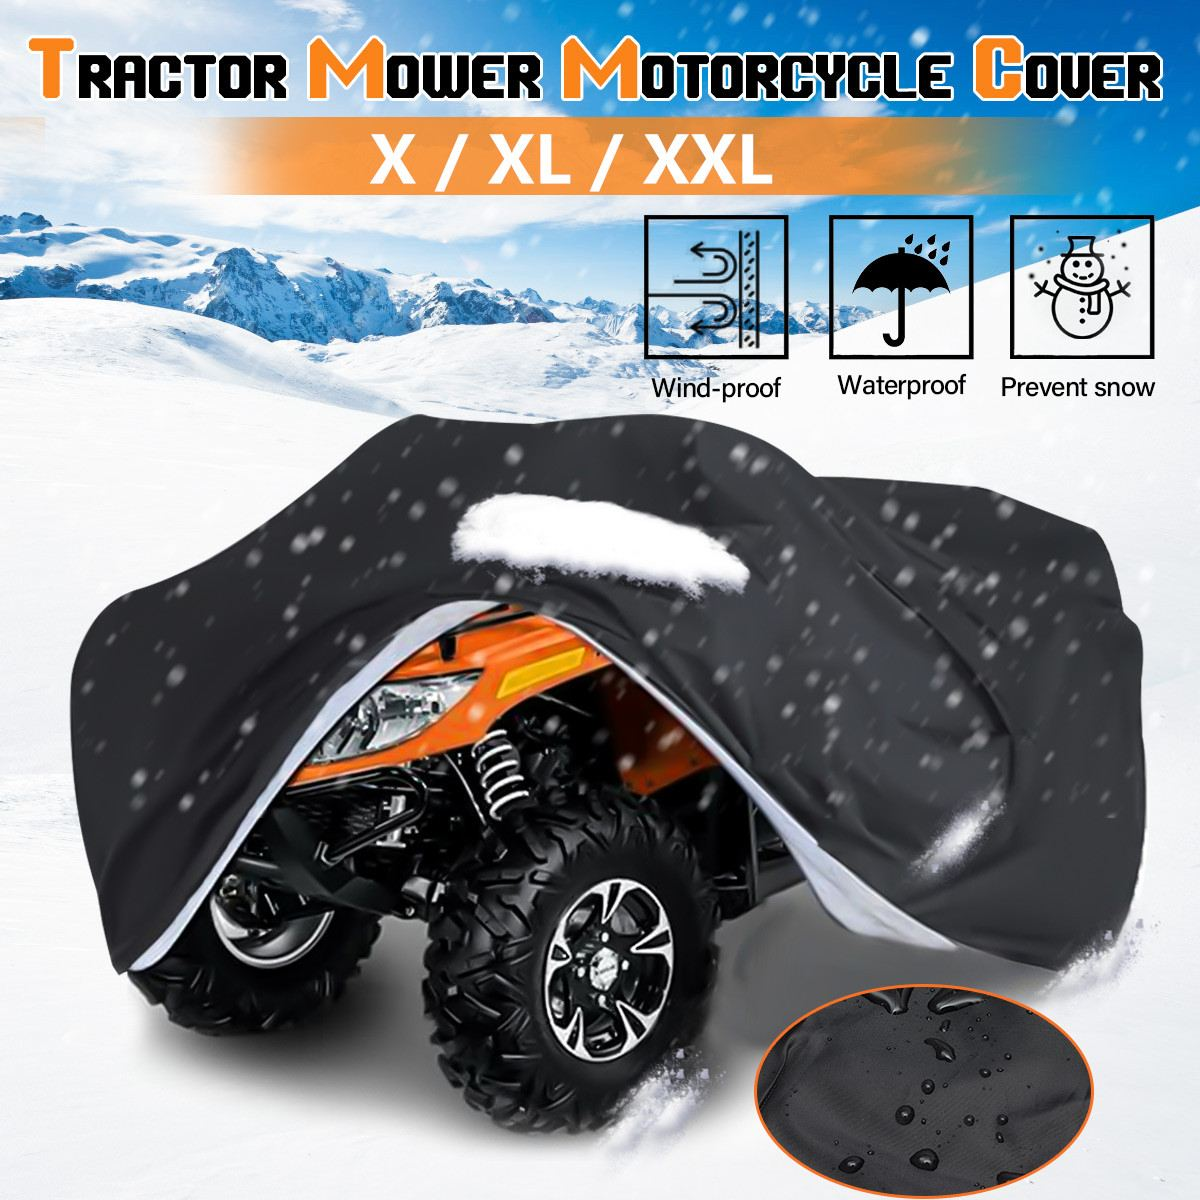 L/XL/XXL Lawn Mower Cover Waterproof Snowblower Cover Shade UV Protection Tractor Covers For Yard Garden Furniture Motorcycle